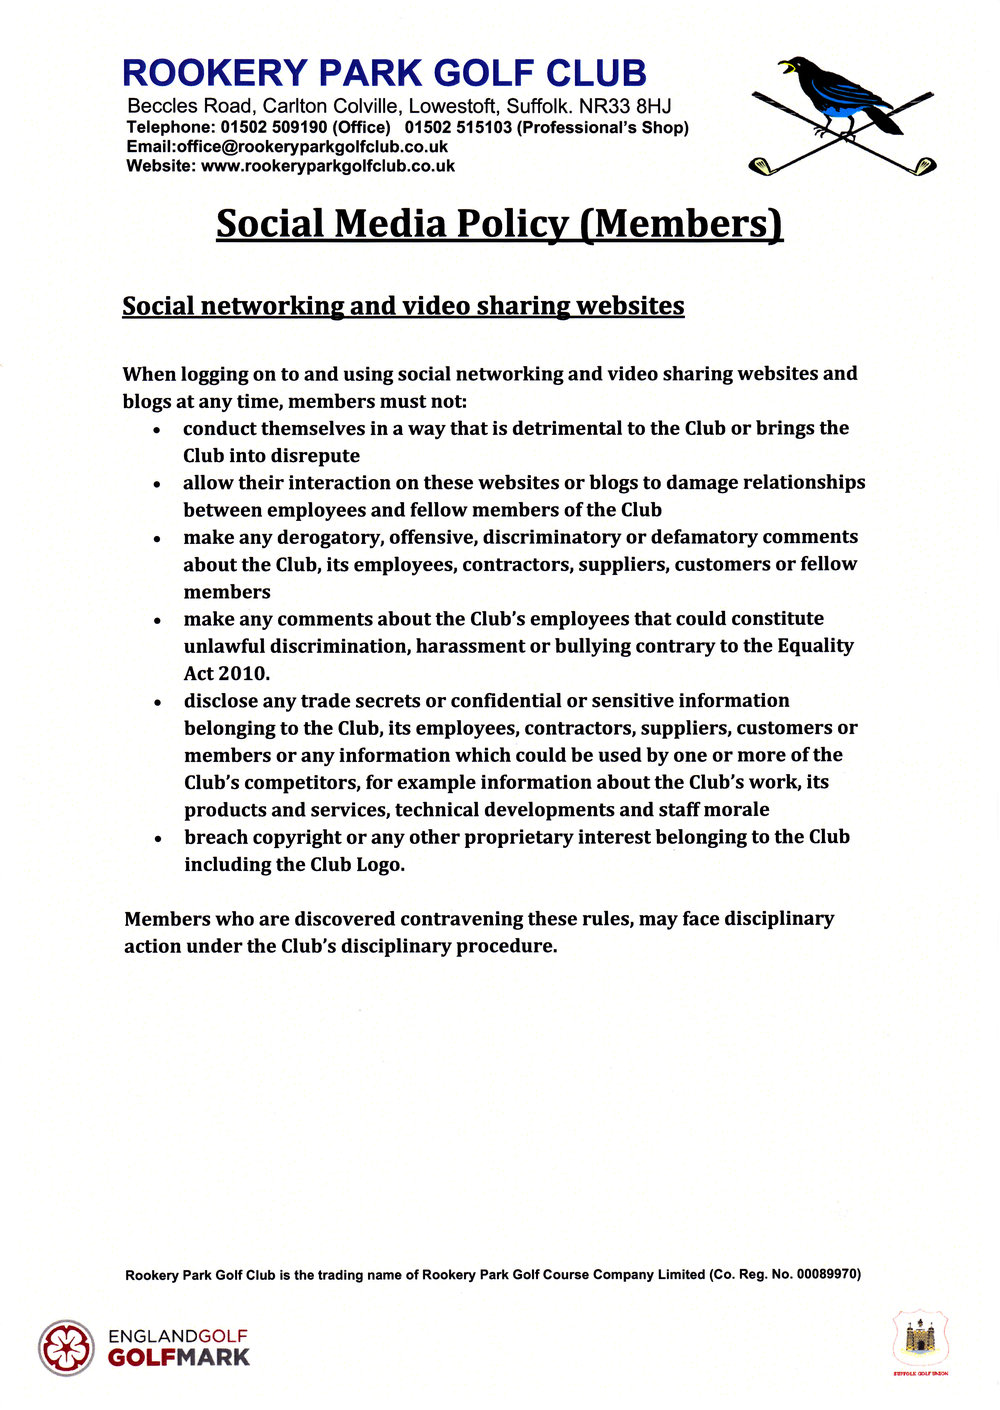 Rookery Park GC Social Media Policy Effective 1st February 2017